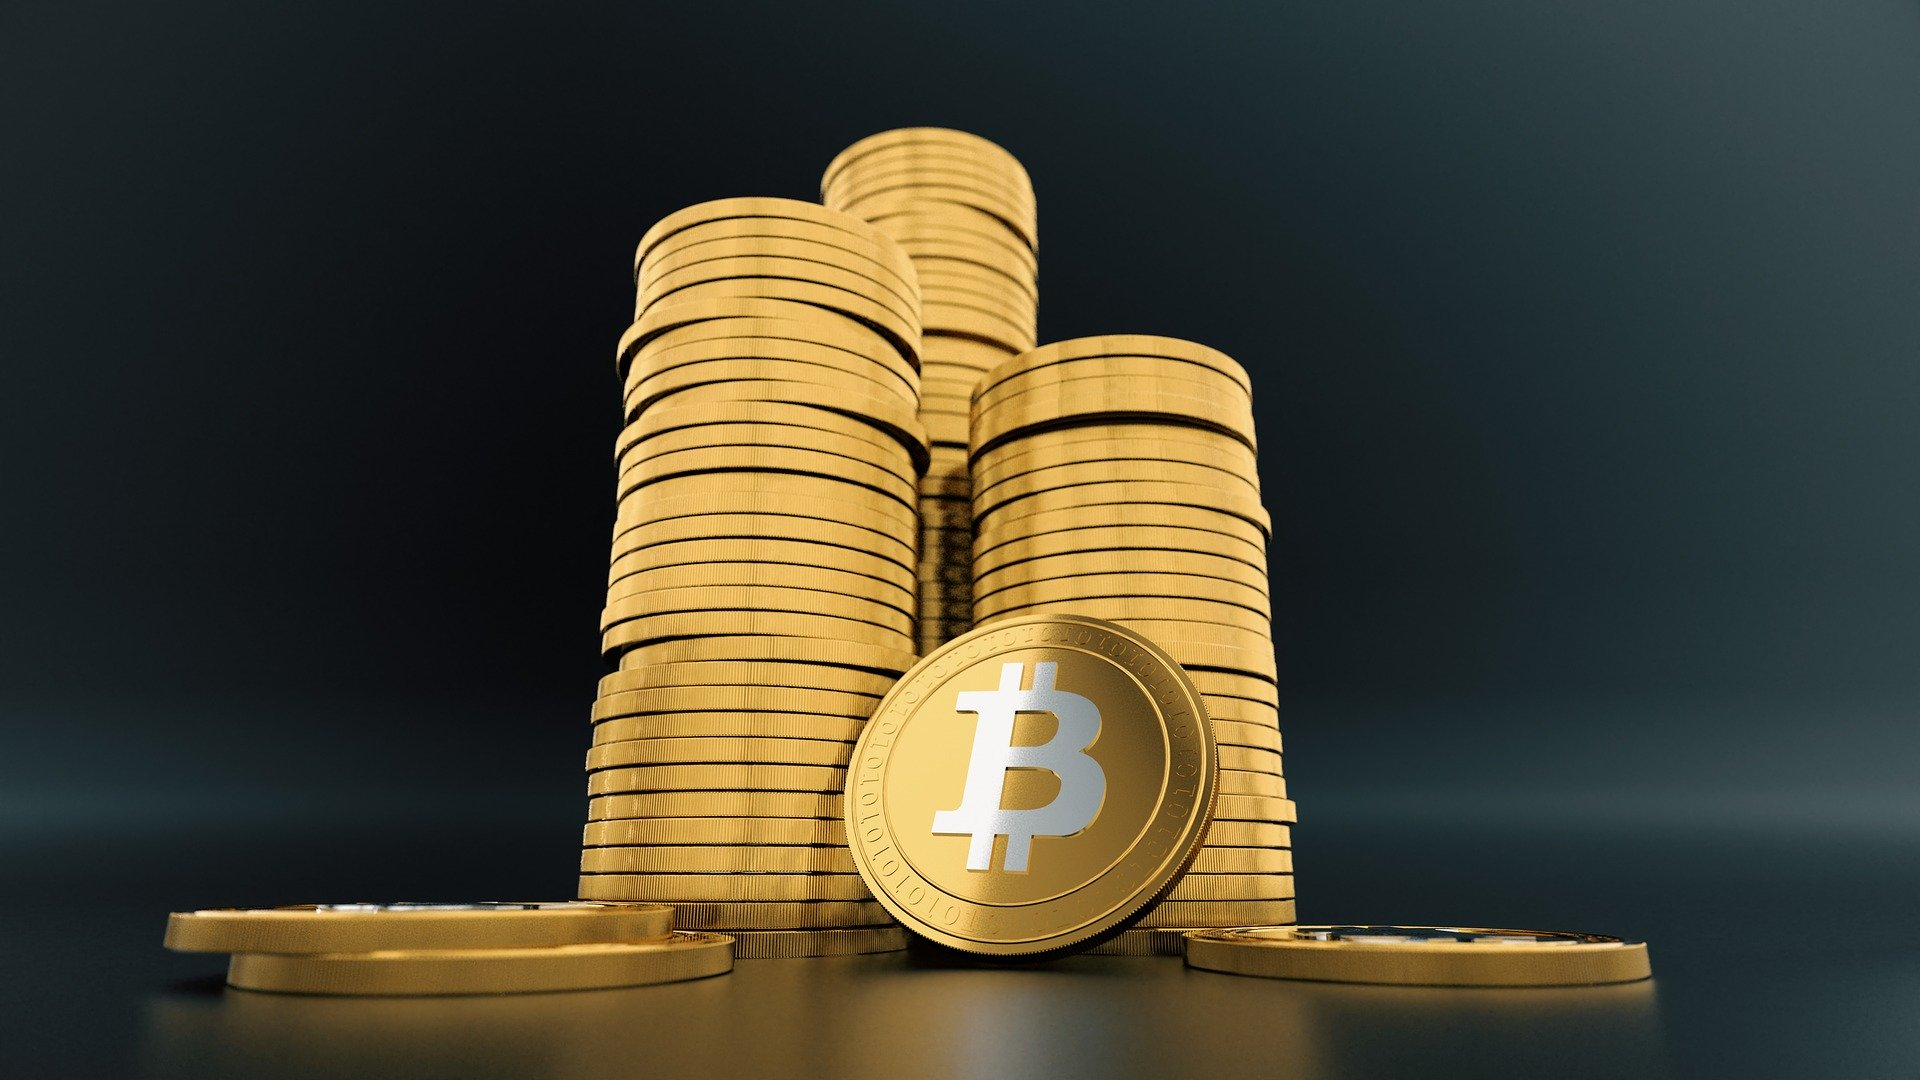 As promessas de recompensas do Bitcoin faucet